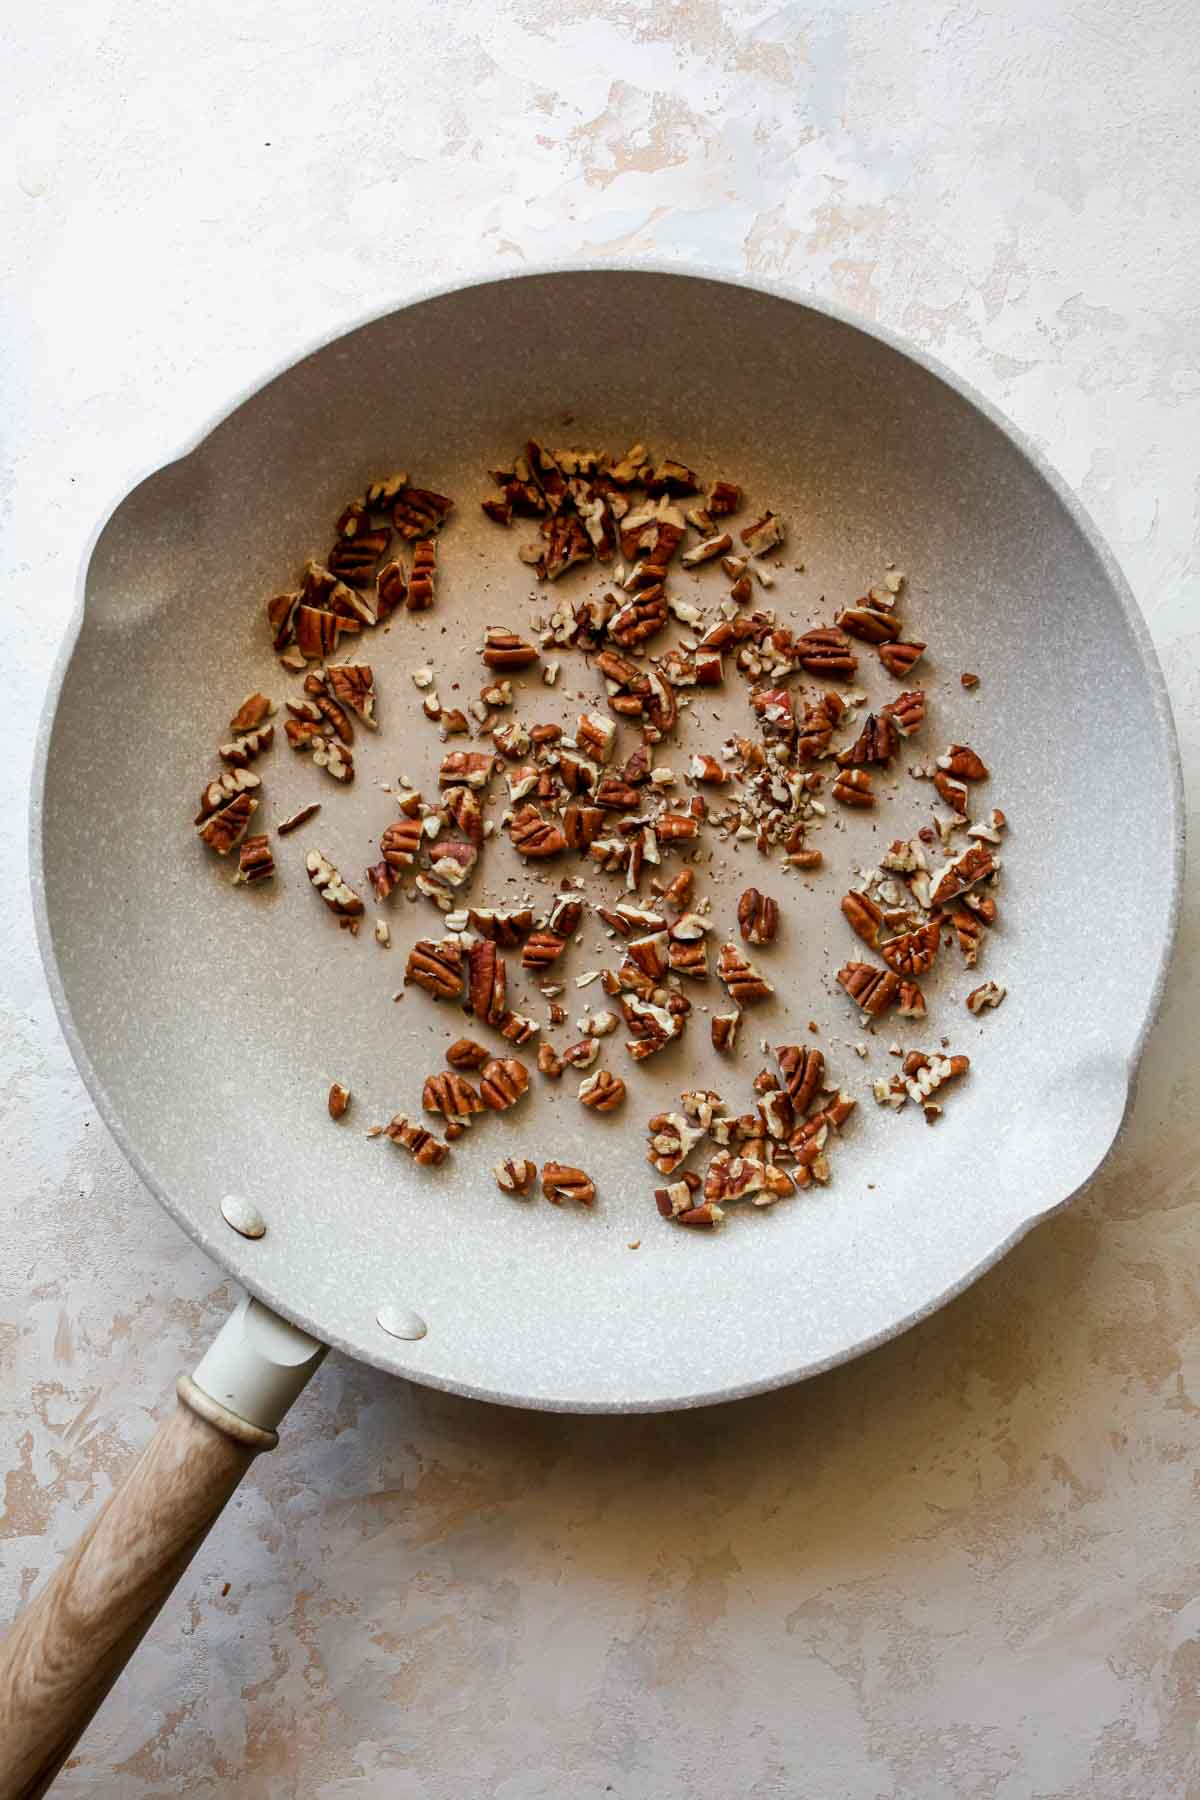 Chopped pecans toasting in a skillet